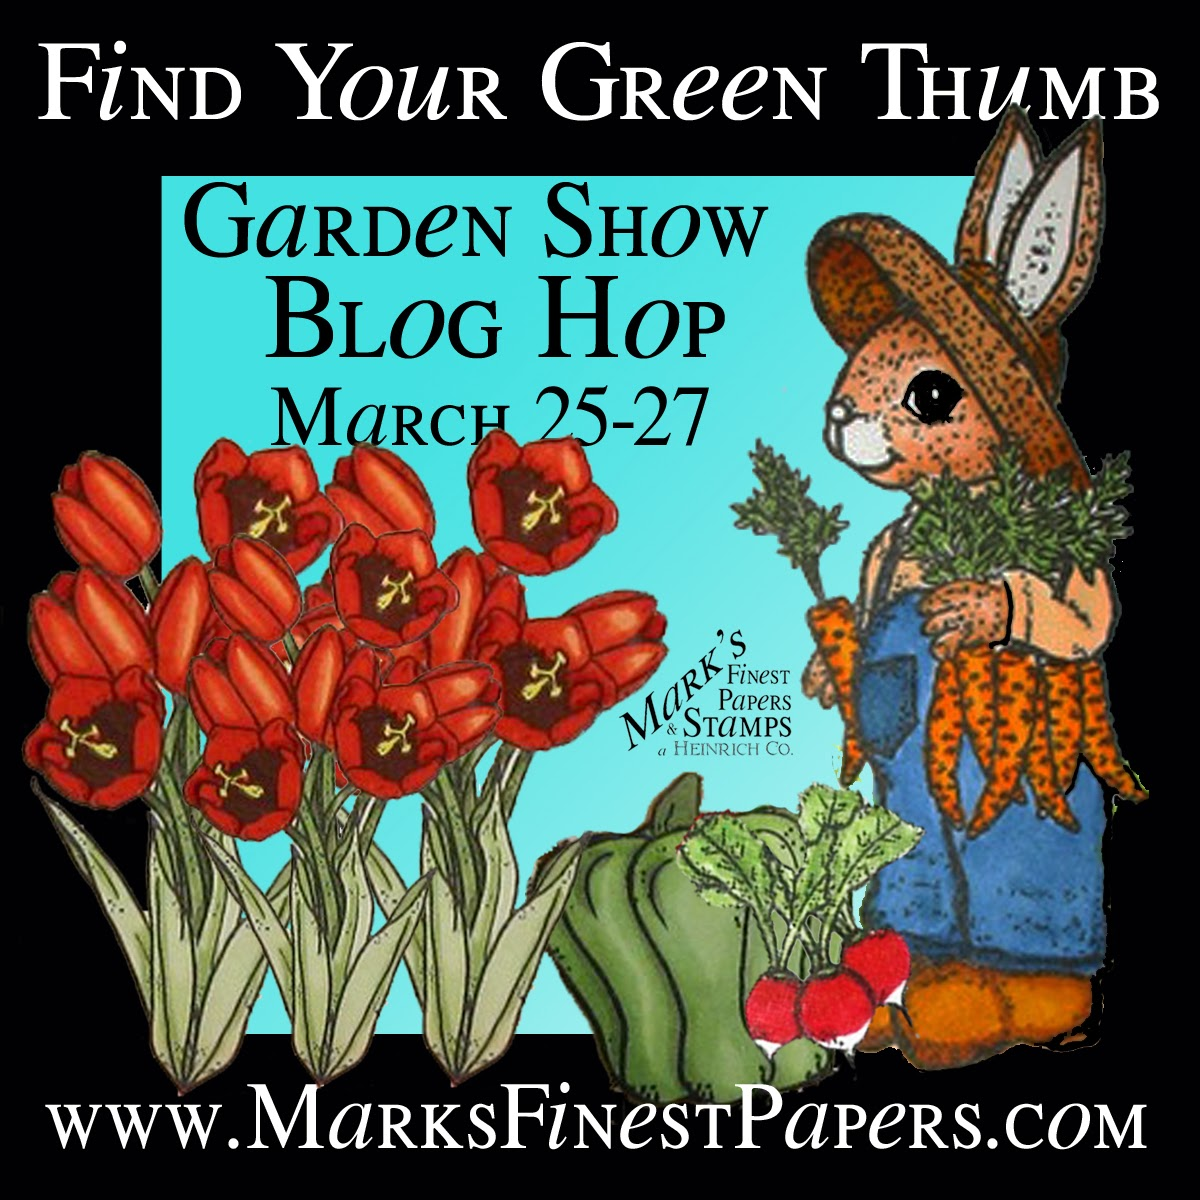 MFP Garden Show Blog Hop - March 25-27